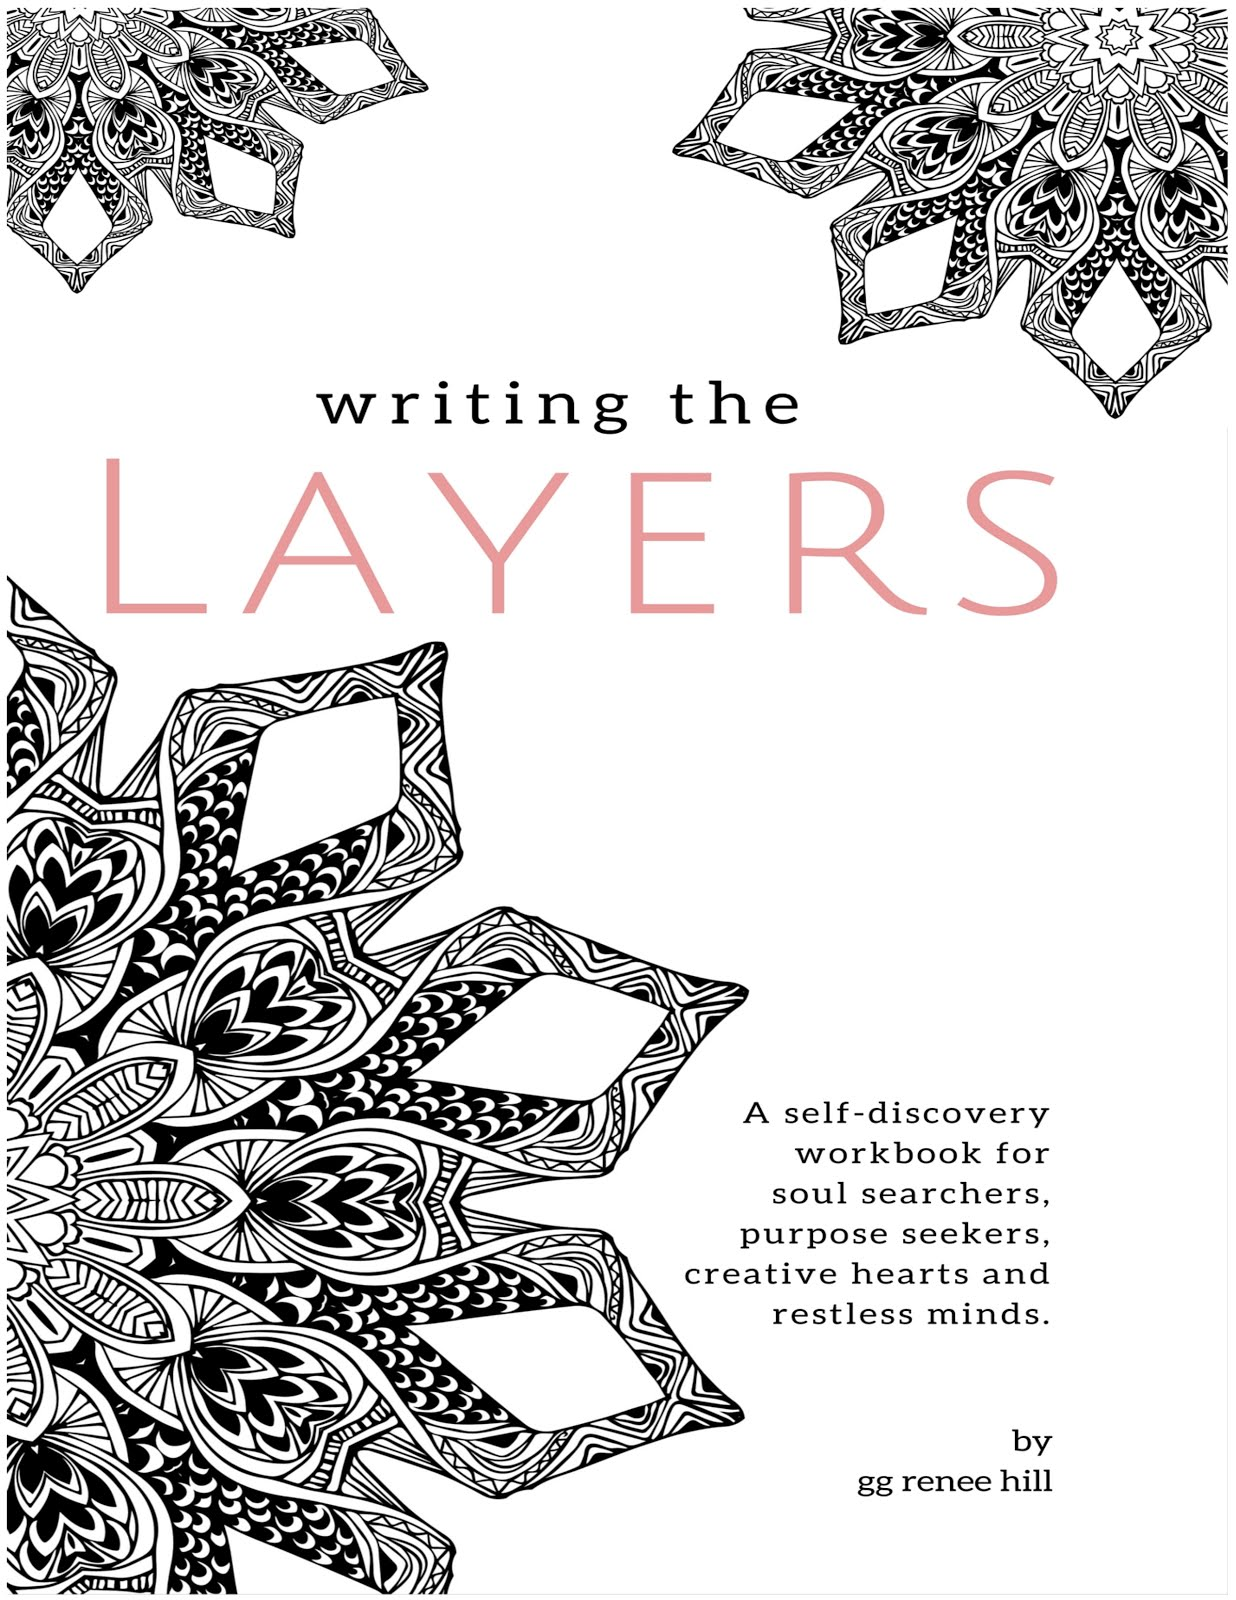 WRITING THE LAYERS WORKBOOK